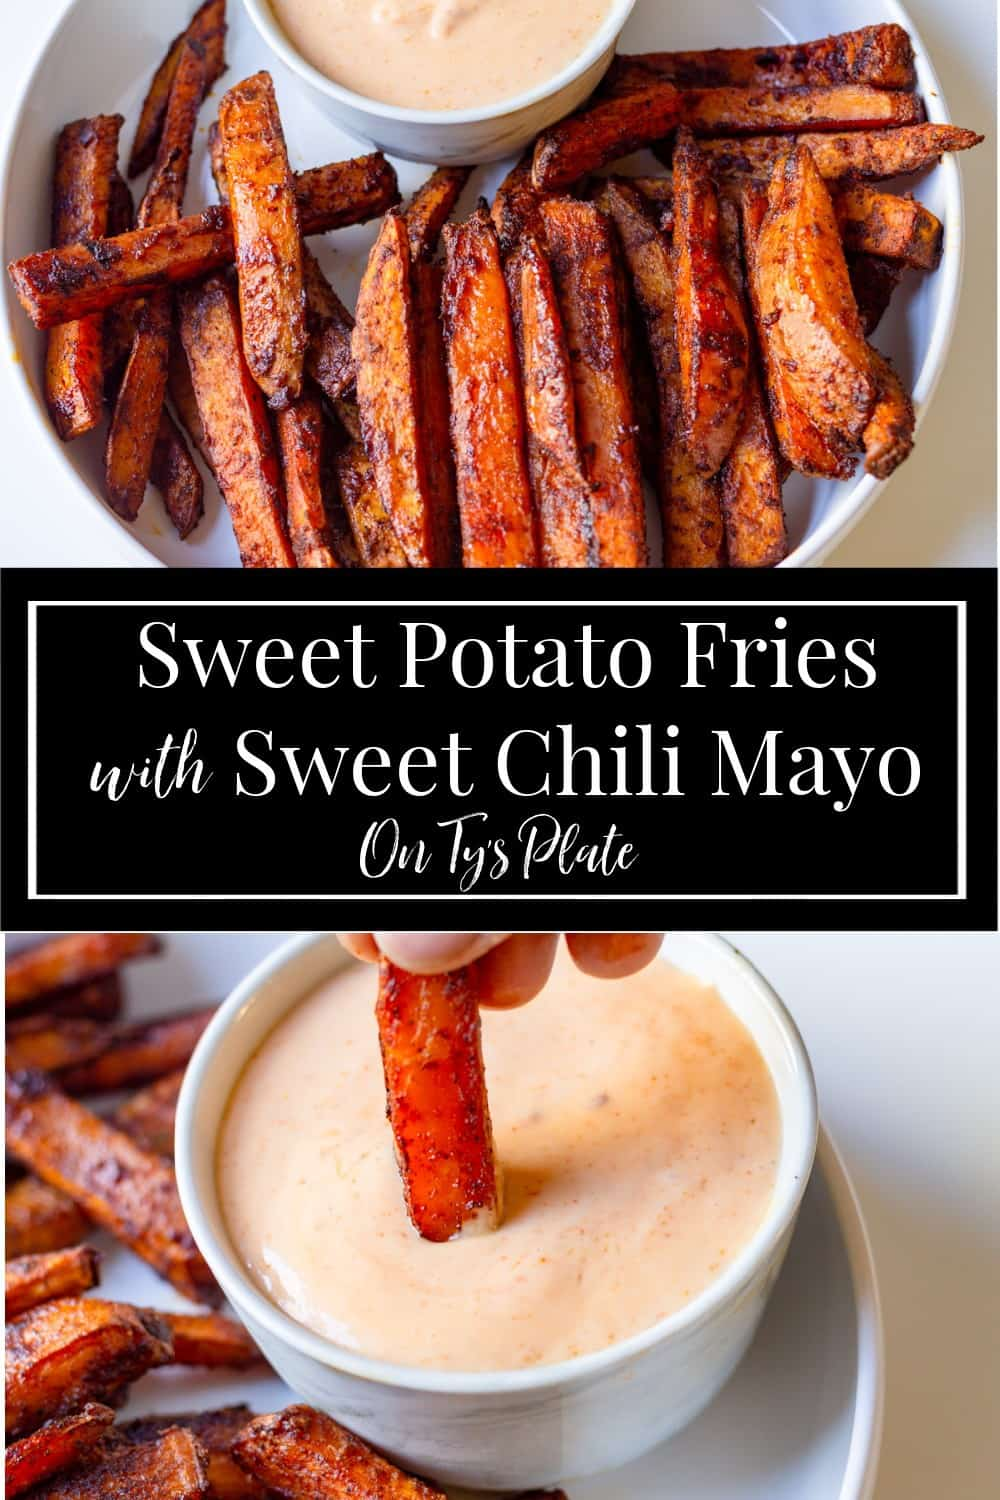 Sweet Potato Fries with Sweet Chili Mayo